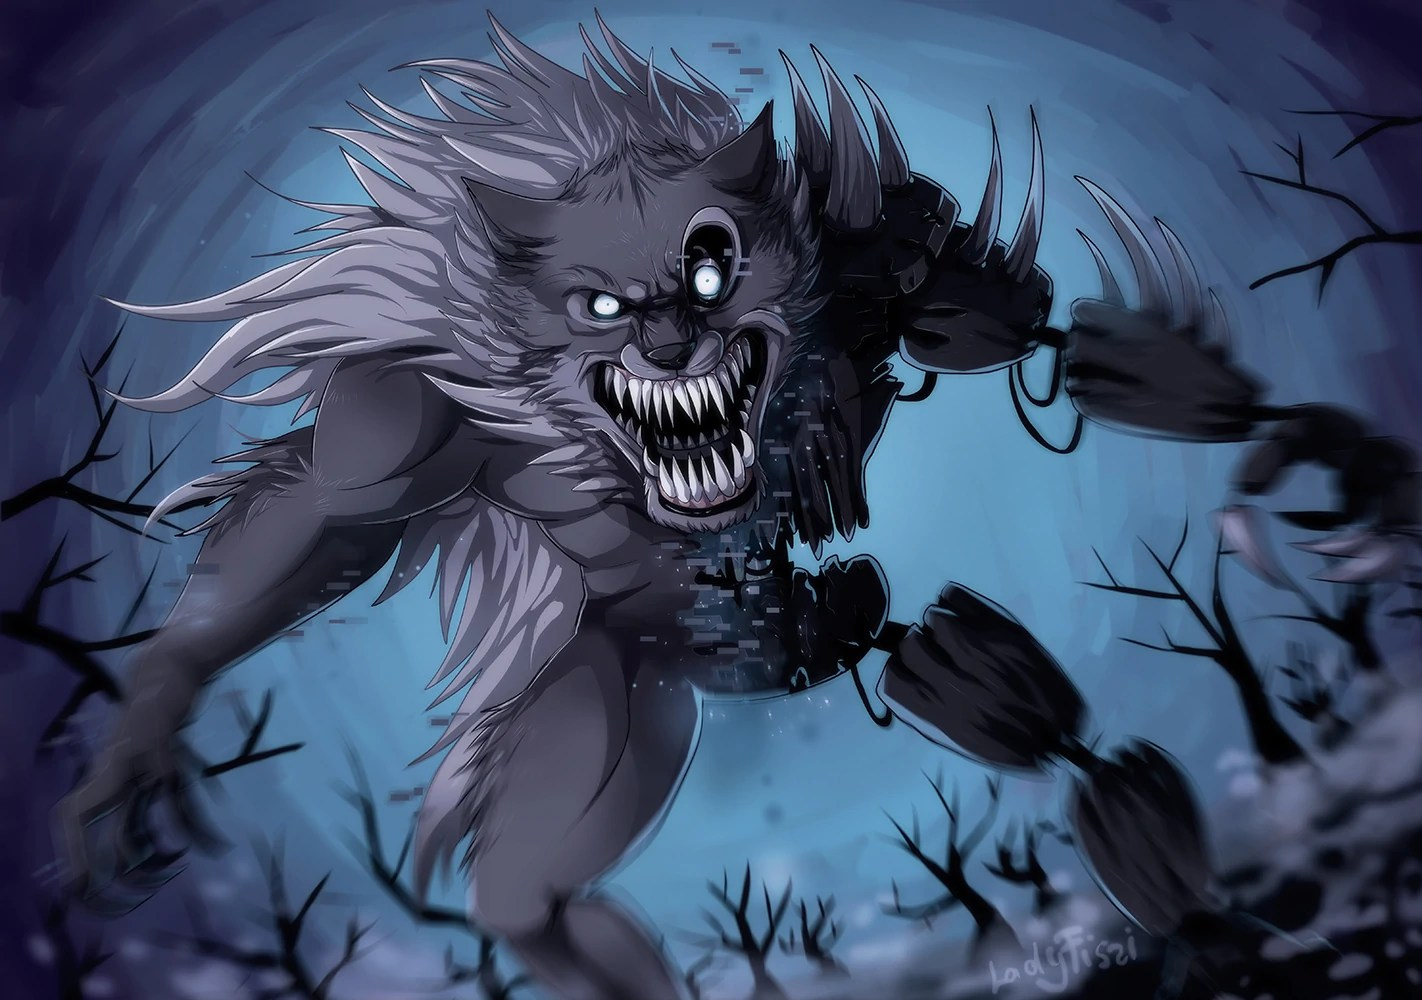 Twisted Wolf Fnaf The Novel Wiki Fandom Powered By Wikia (7